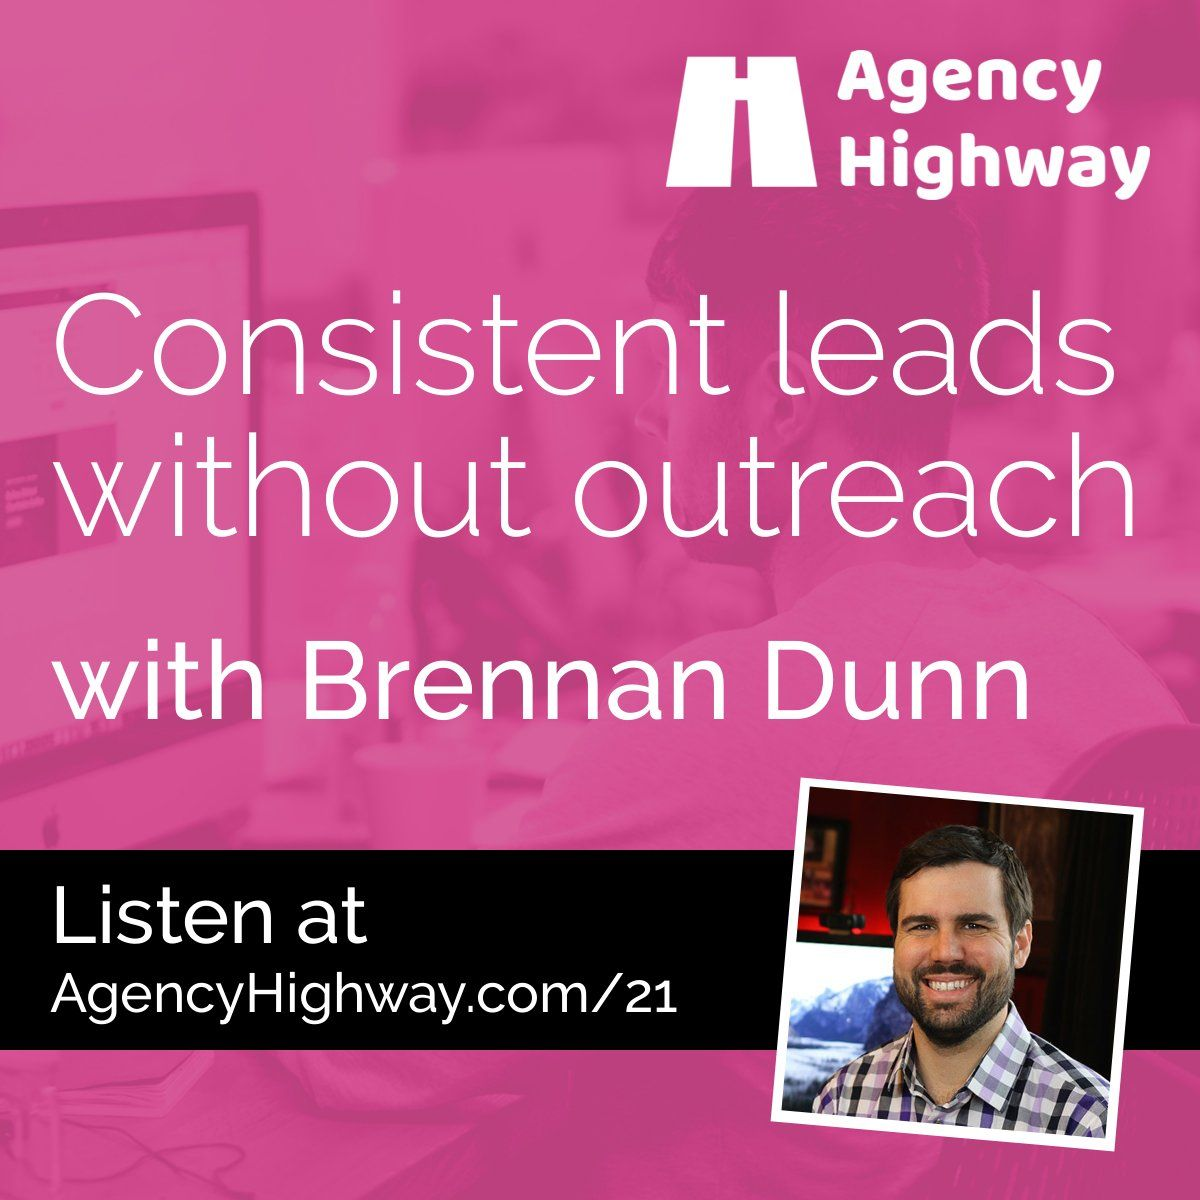 Getting consistent leads to your #webdesign business without outreach. In this interview Brennan Dunn shares the exact strategies he used to grow his agency to $2 million revenue in just 3 years!  https://buff.ly/2nE6ZVb #creativeagency #digitalagencypic.twitter.com/wlxTVPsL1d